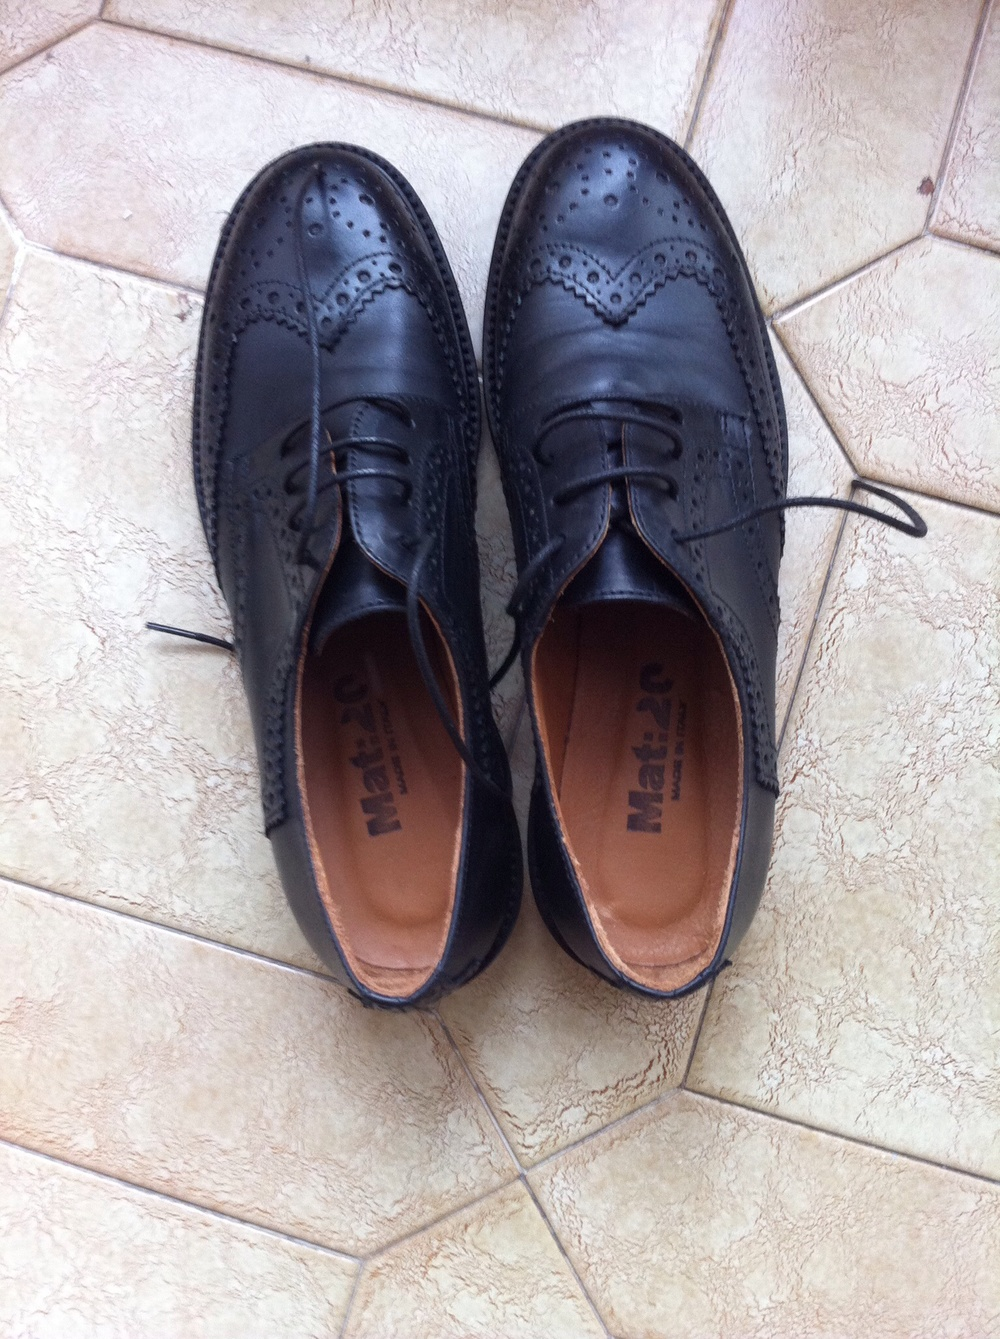 Mat : 20 - Handmade in Italy - Brogues shoes